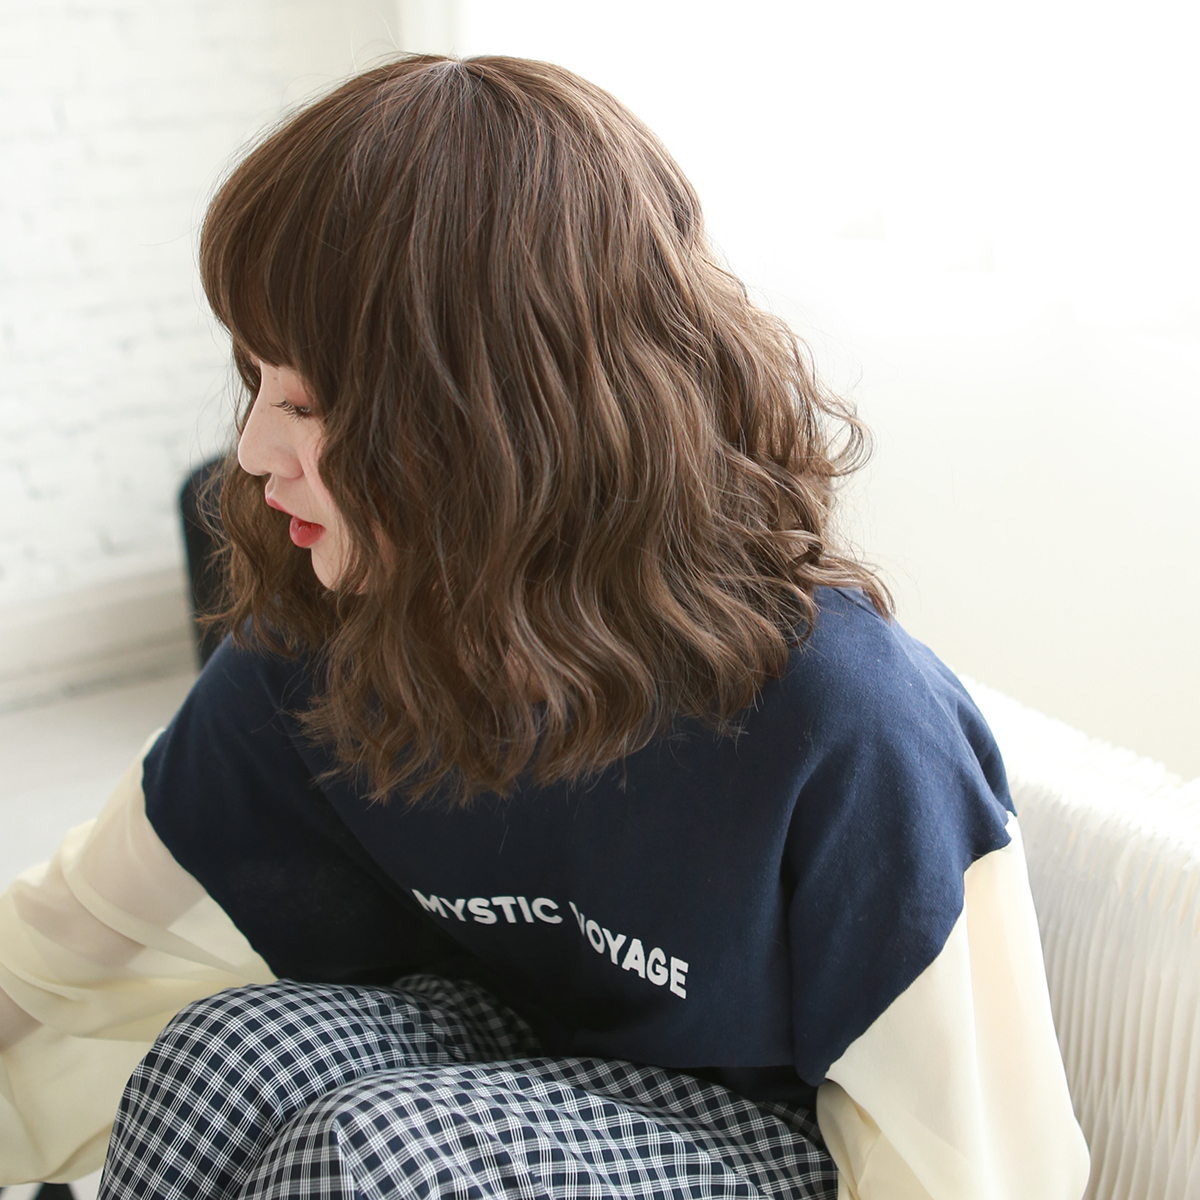 Usd 39 66 Japanese Fashion Wig Women Short Hair Short Curly Hair Corn Hot Korean Style Bubble Faced Curly Collarbone Hair Female Net Red Wholesale From China Online Shopping Buy Asian Products Online